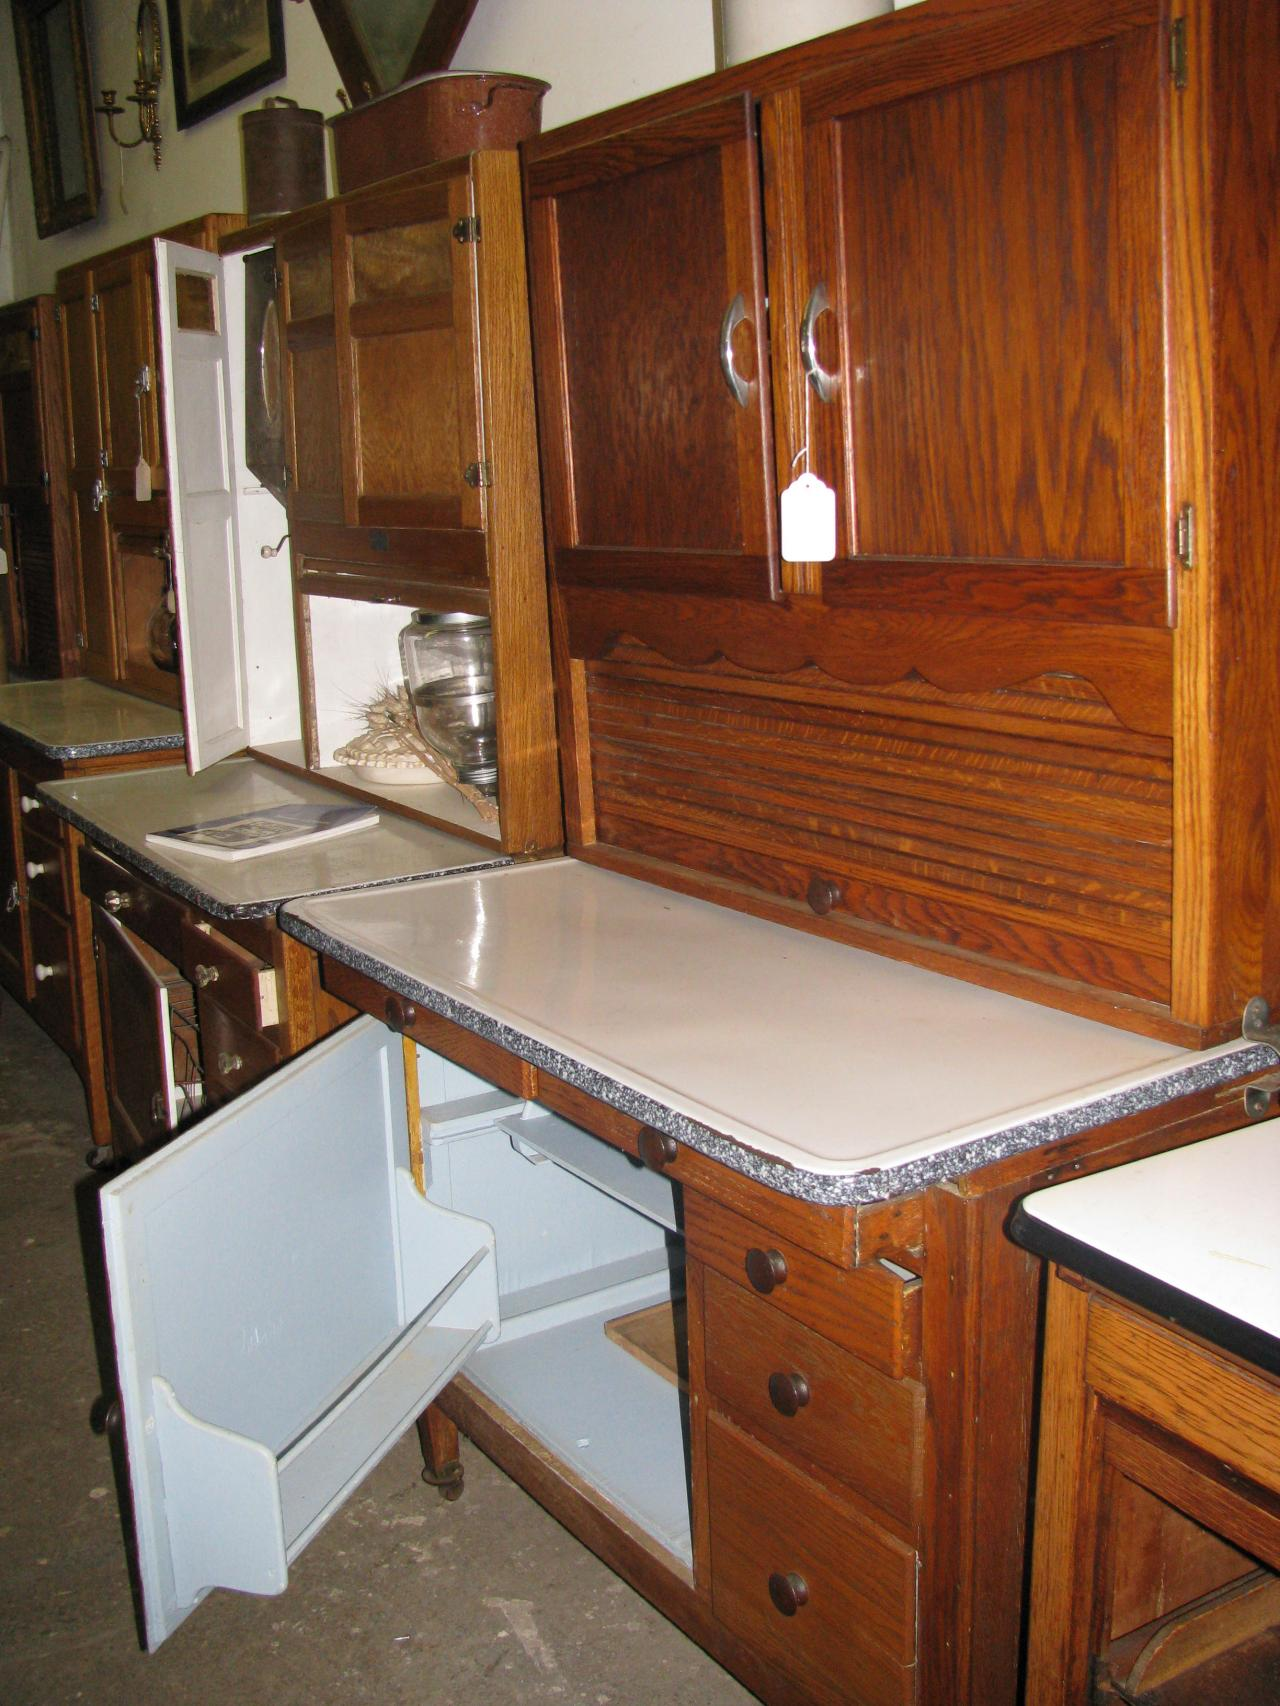 How Do I Choose the Best Antique Kitchen Cabinets?